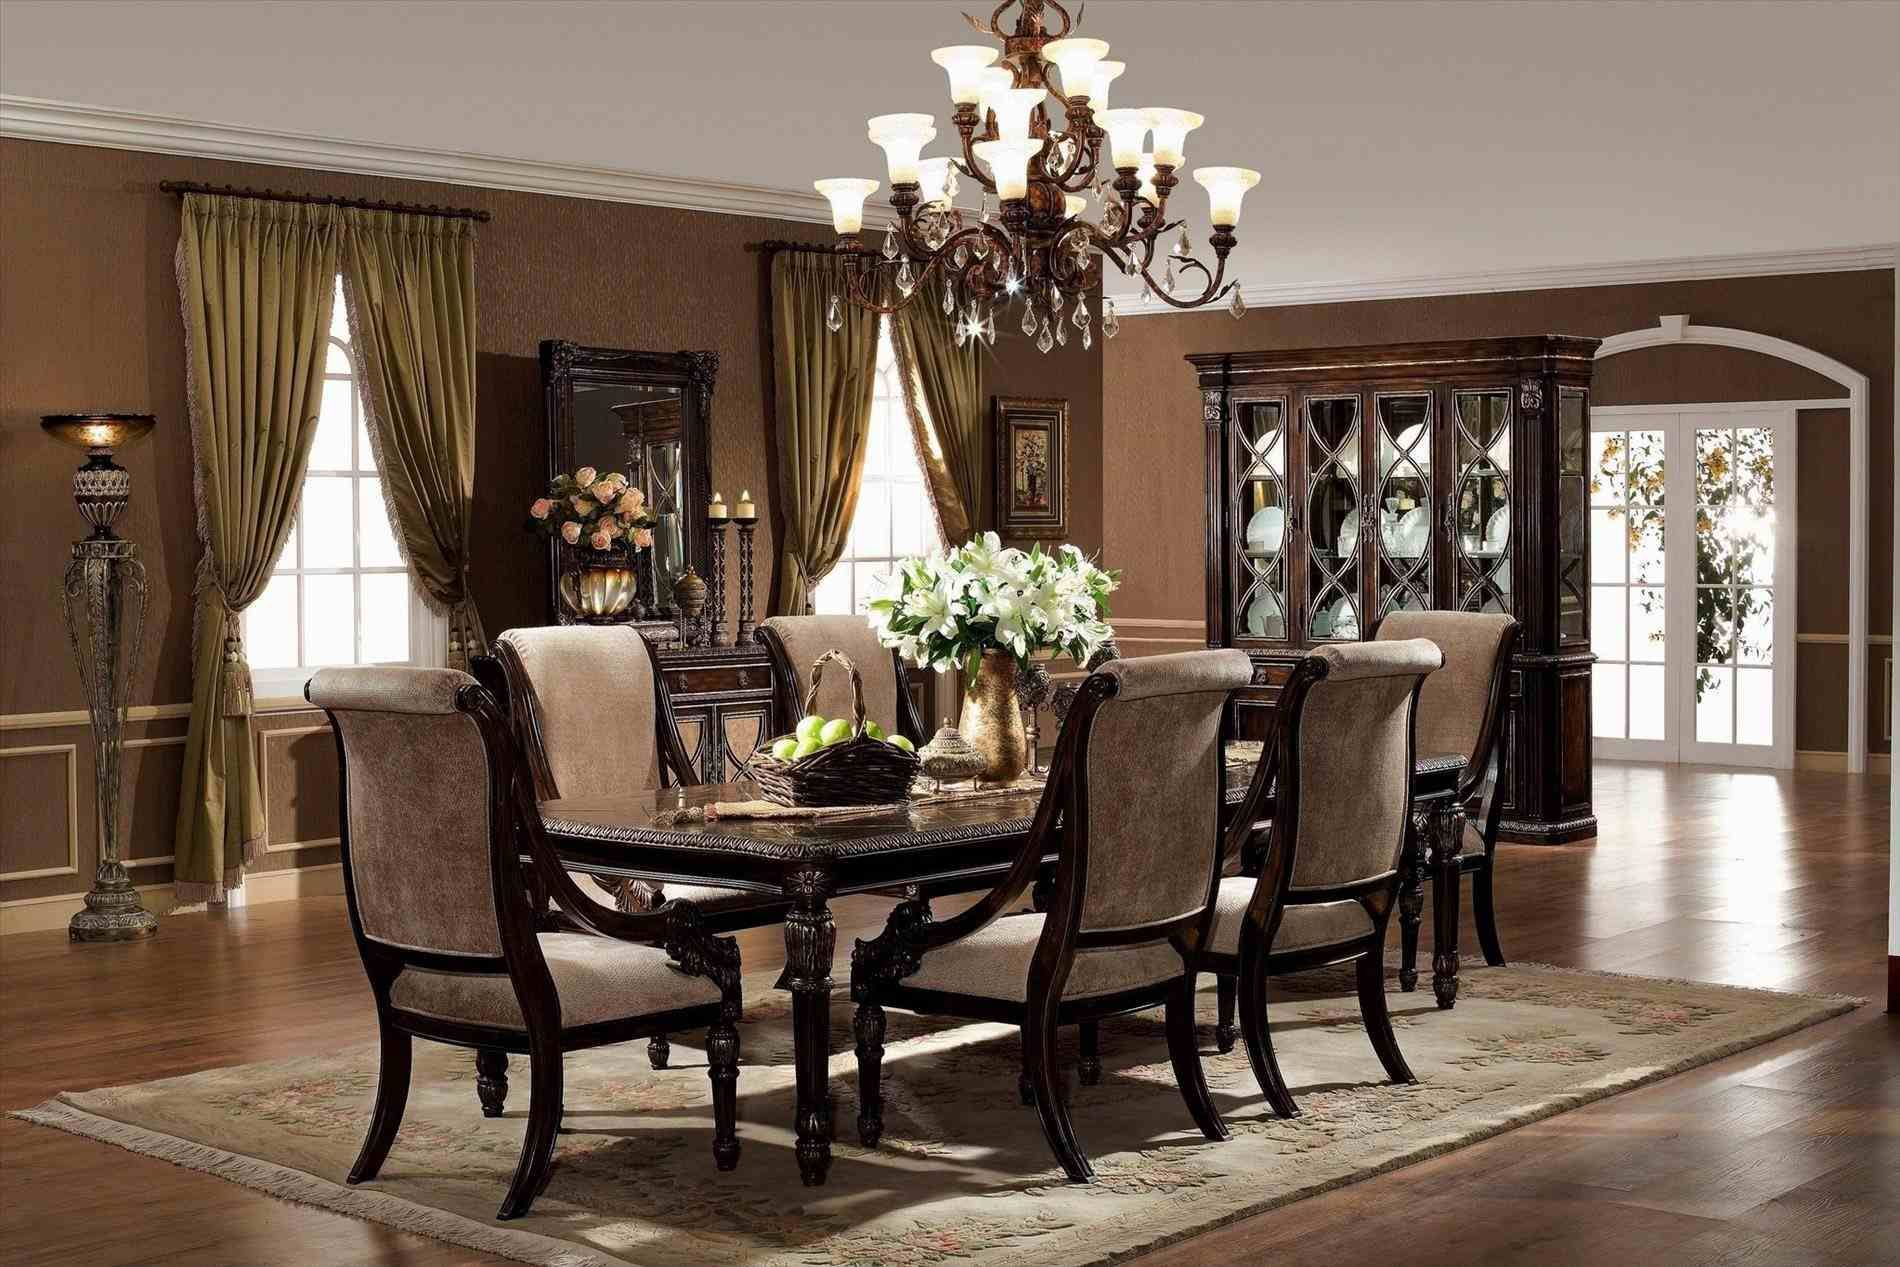 New Post Dining Room Ideas On A Budget Visit Bobayule Trending